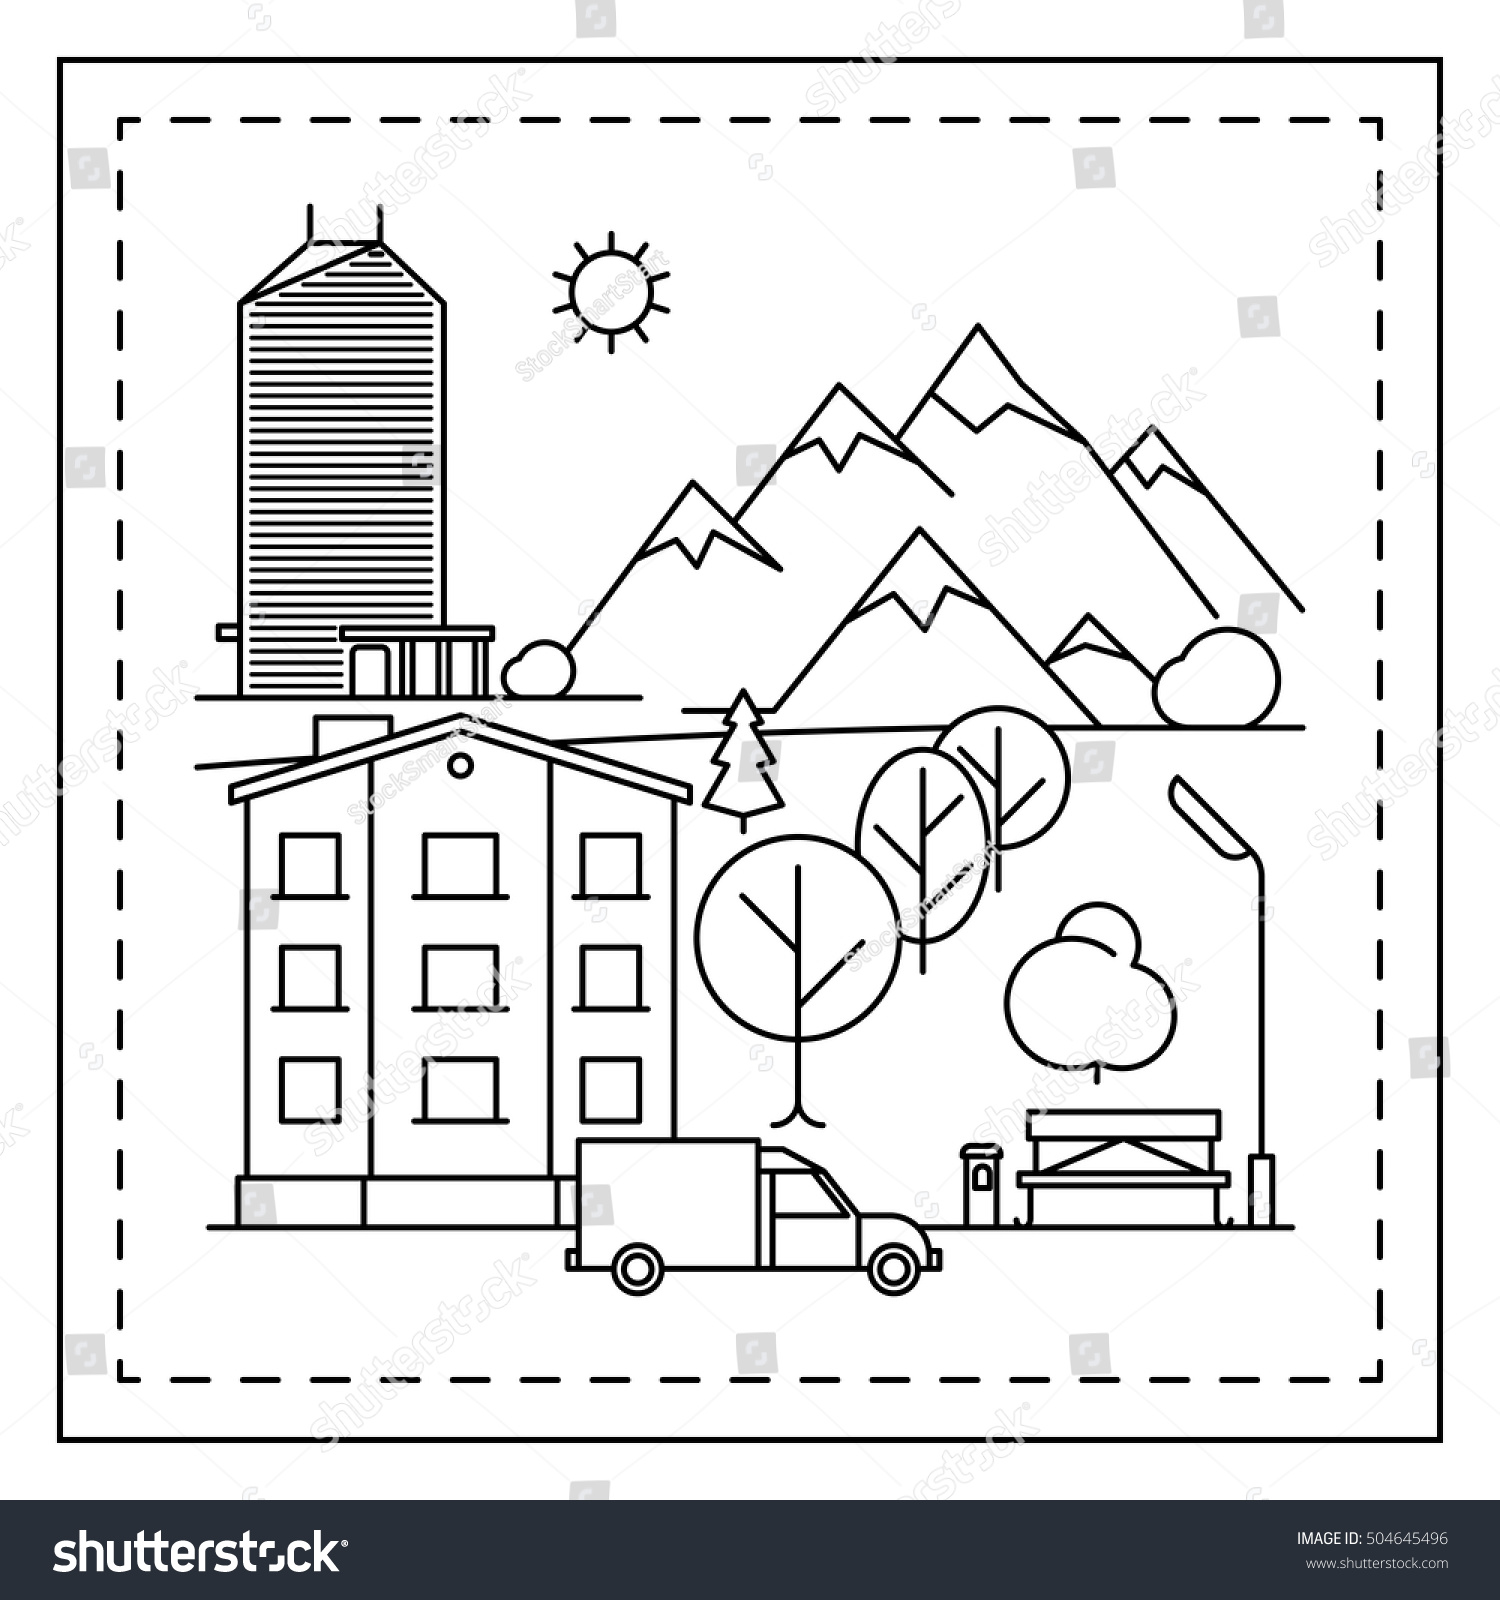 Coloring Page Kids City Landscape Houses Stock Vector 504645496 ...